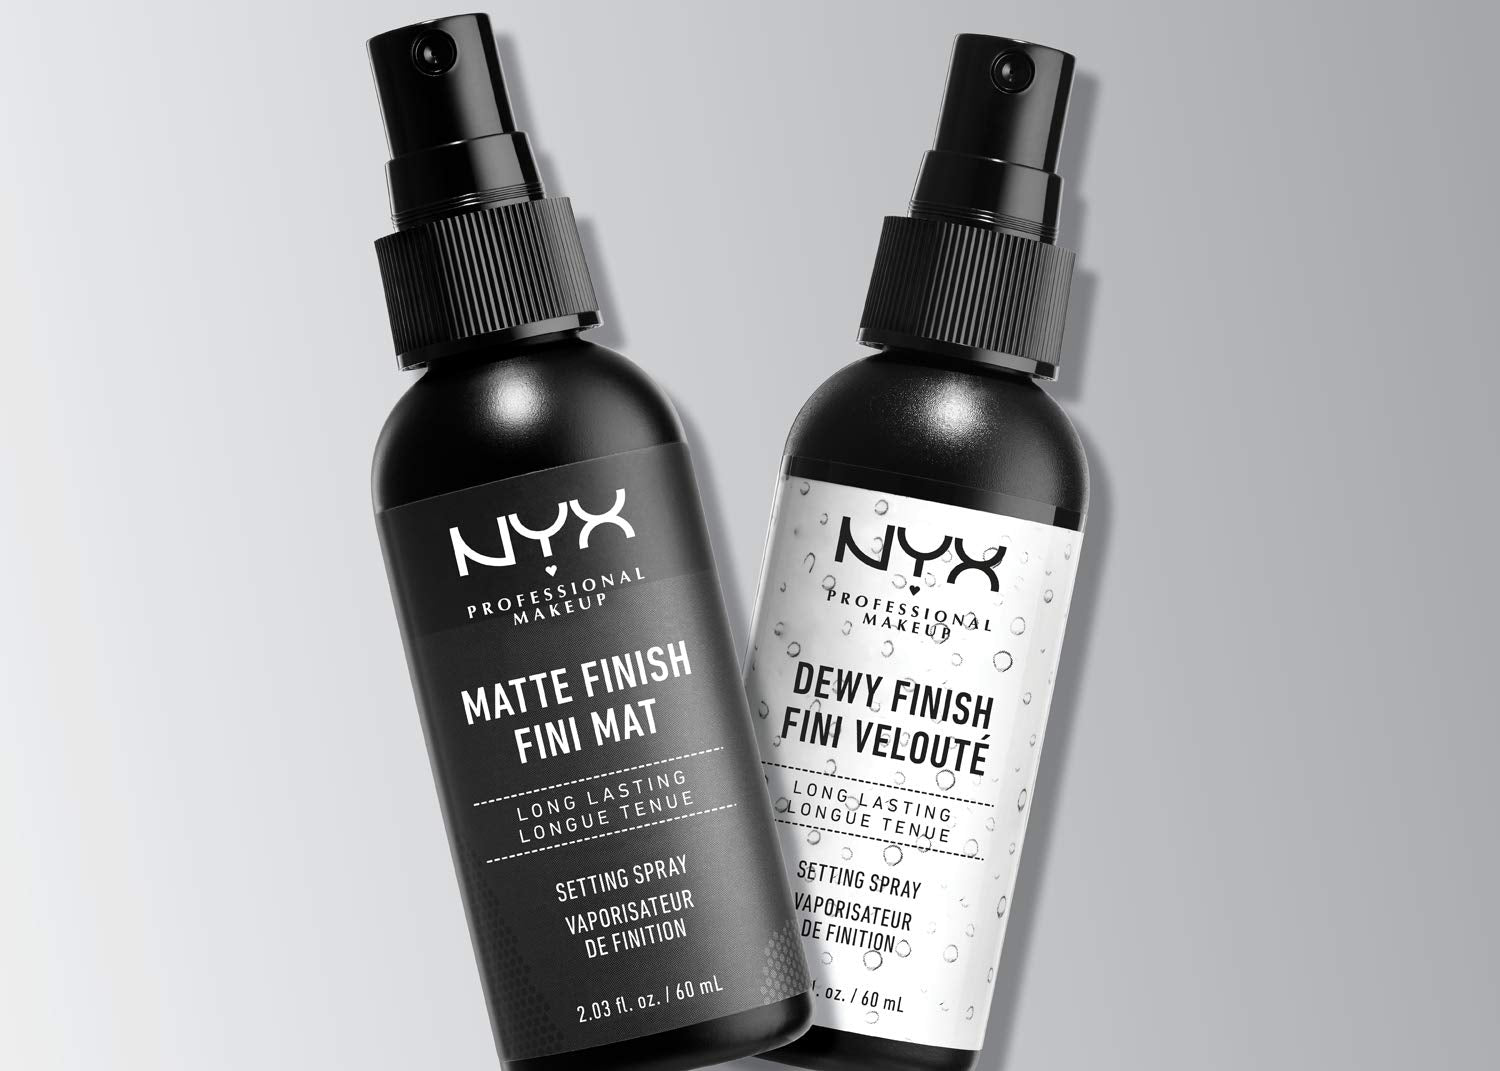 NYX Professional Makeup Spray fijador Makeup Setting Spray, Larga duración, Ligero, Fórmula vegana, Acabado Dewy (hidratado), Pack doble, 60 ml